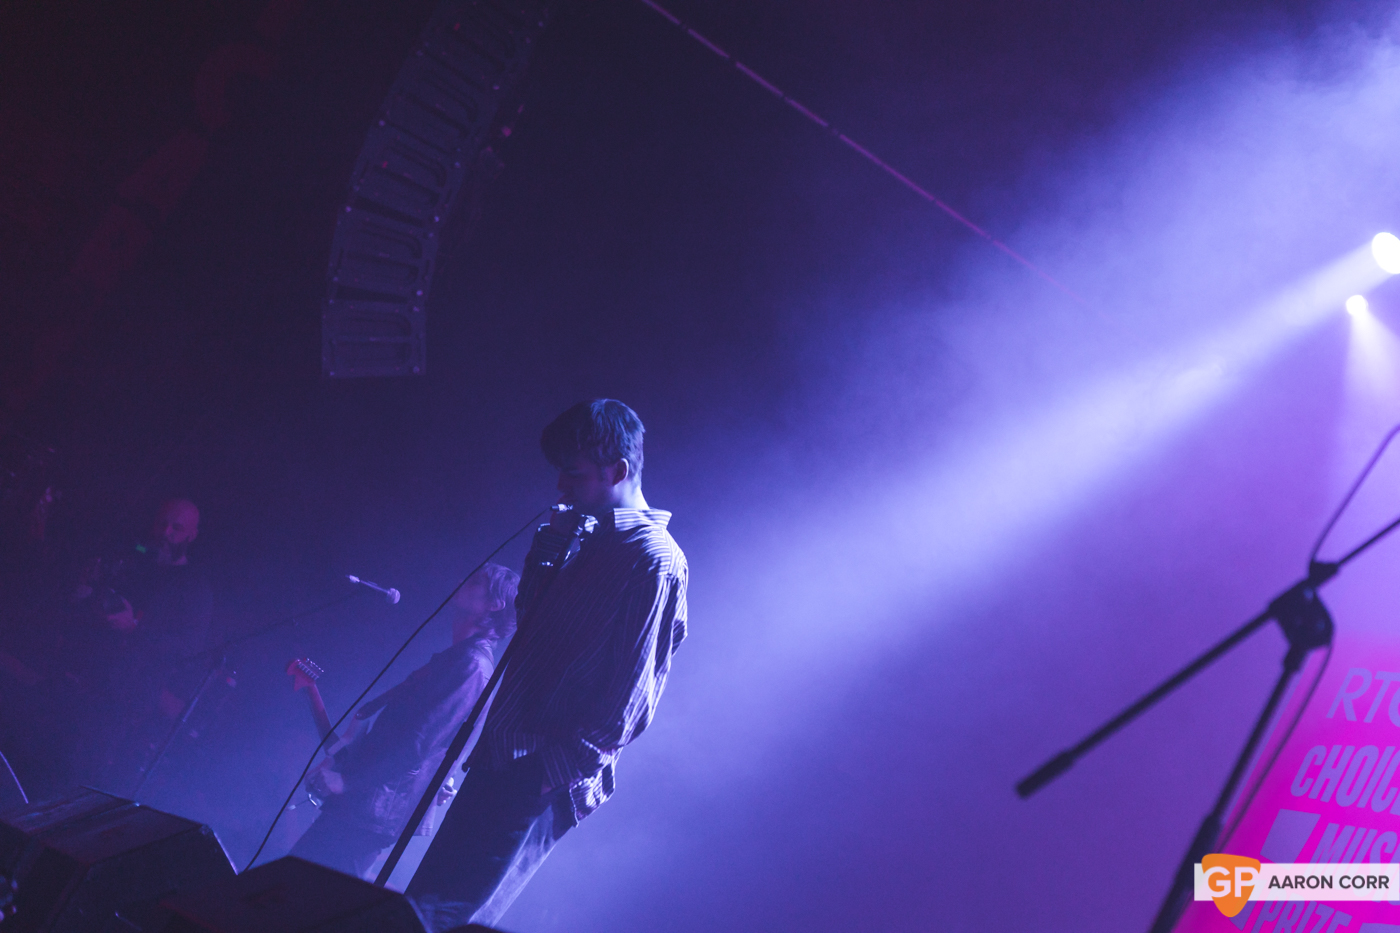 Fontaines DC at Choice Music Prize 2020 in Vicar Street, Dublin on 05-Mar-20 by Aaron Corr-2672